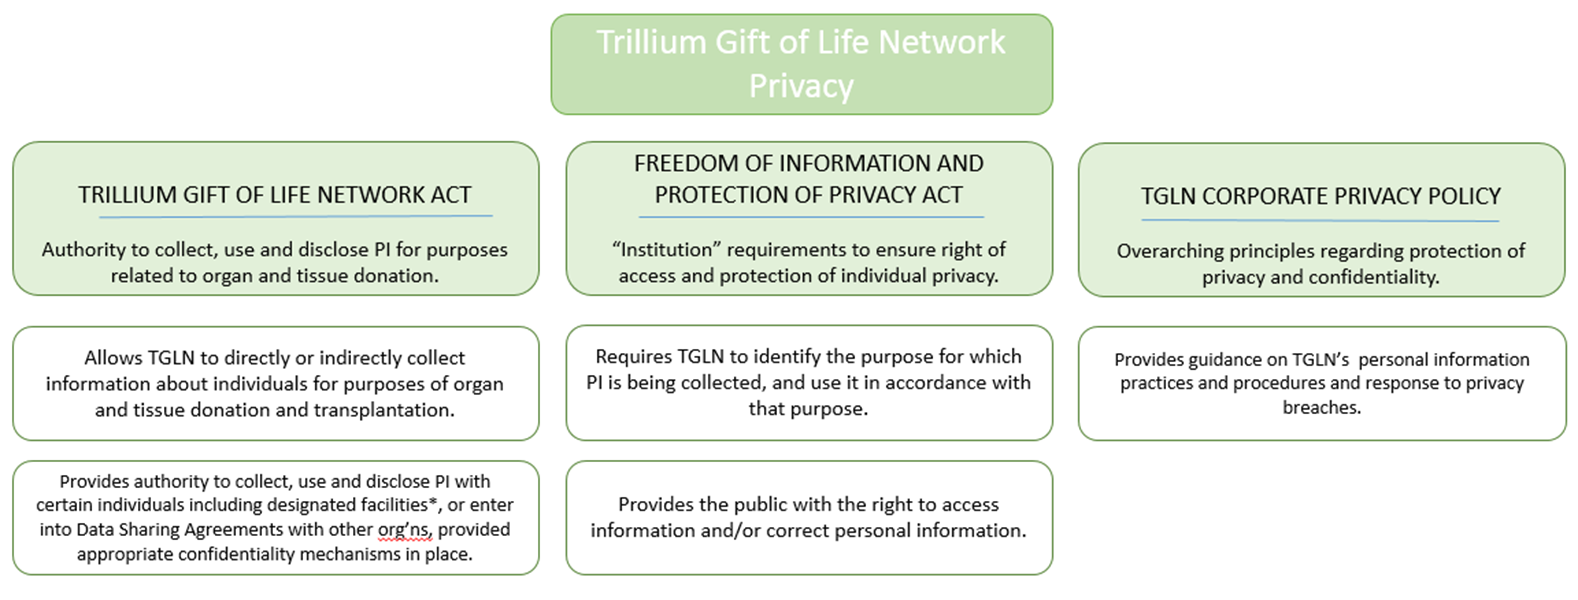 Privacy at TGLN gaphic